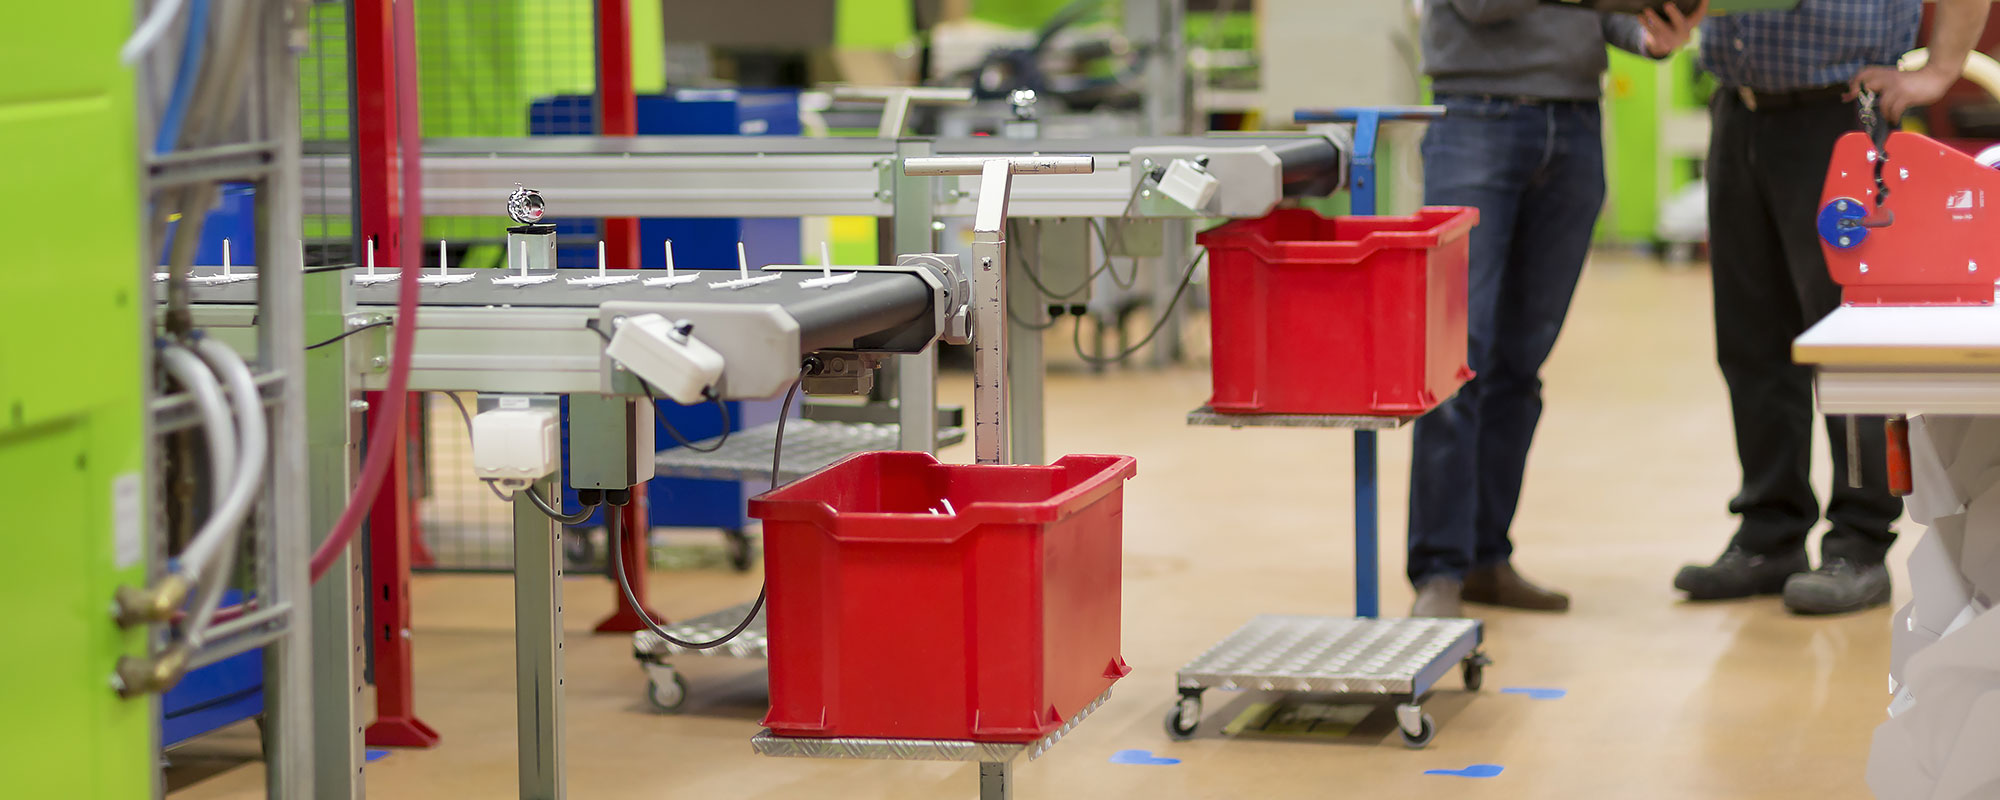 Injection moulding – AMB Industri AB